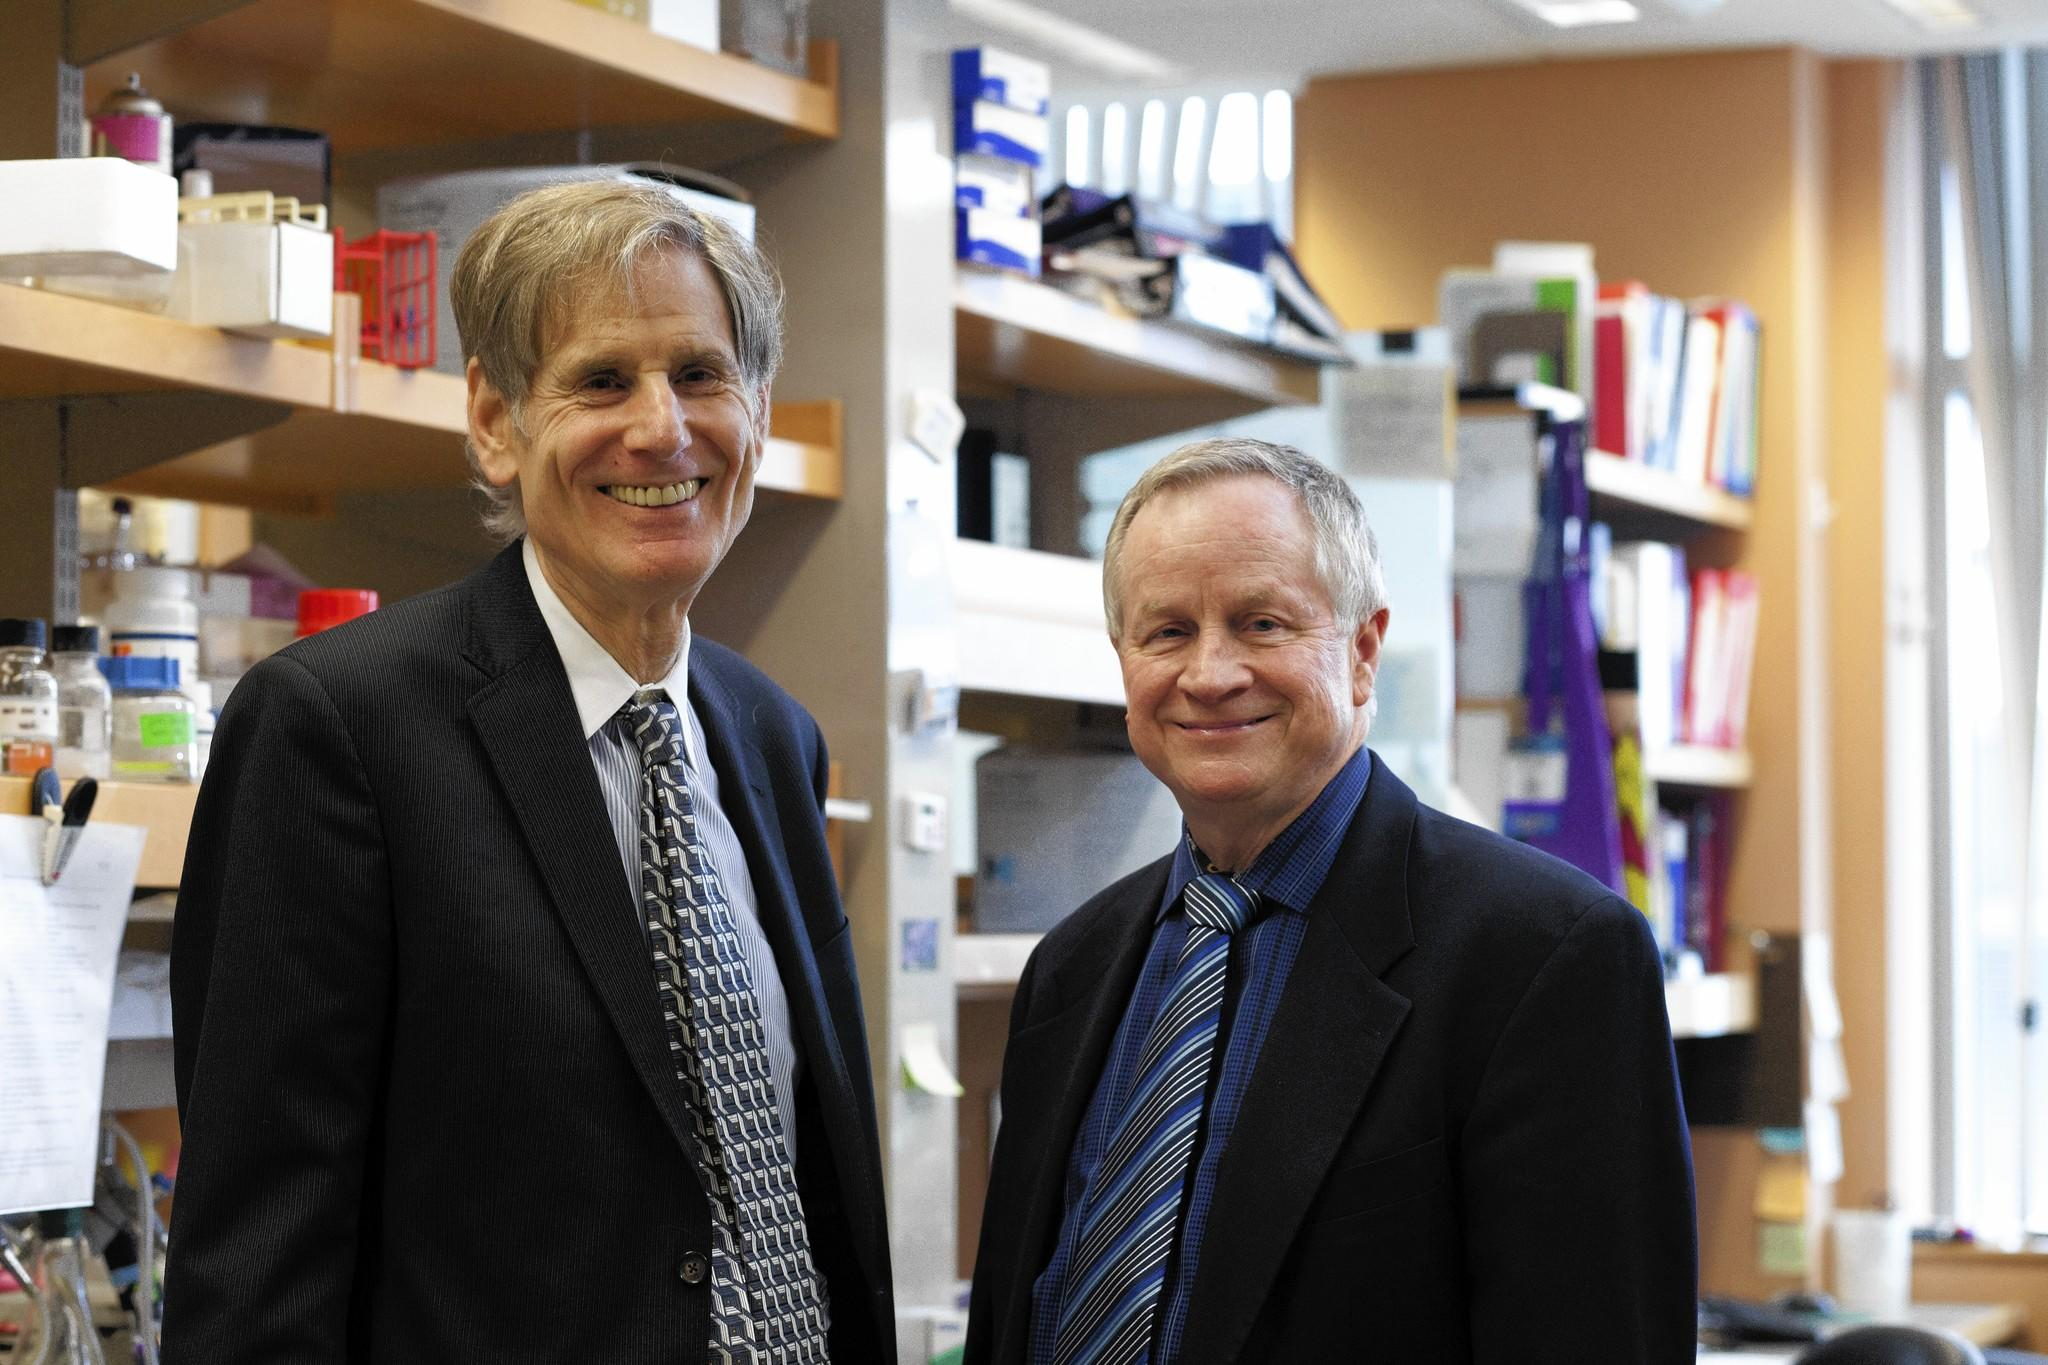 Under the direction of Ralph Weichselbaum, left, and Geoffrey Greene, the Ludwig Center at the University of Chicago plans to accelerate research on metastasis, the process by which cancer cells spread from a primary tumor to multiple sites in the body.